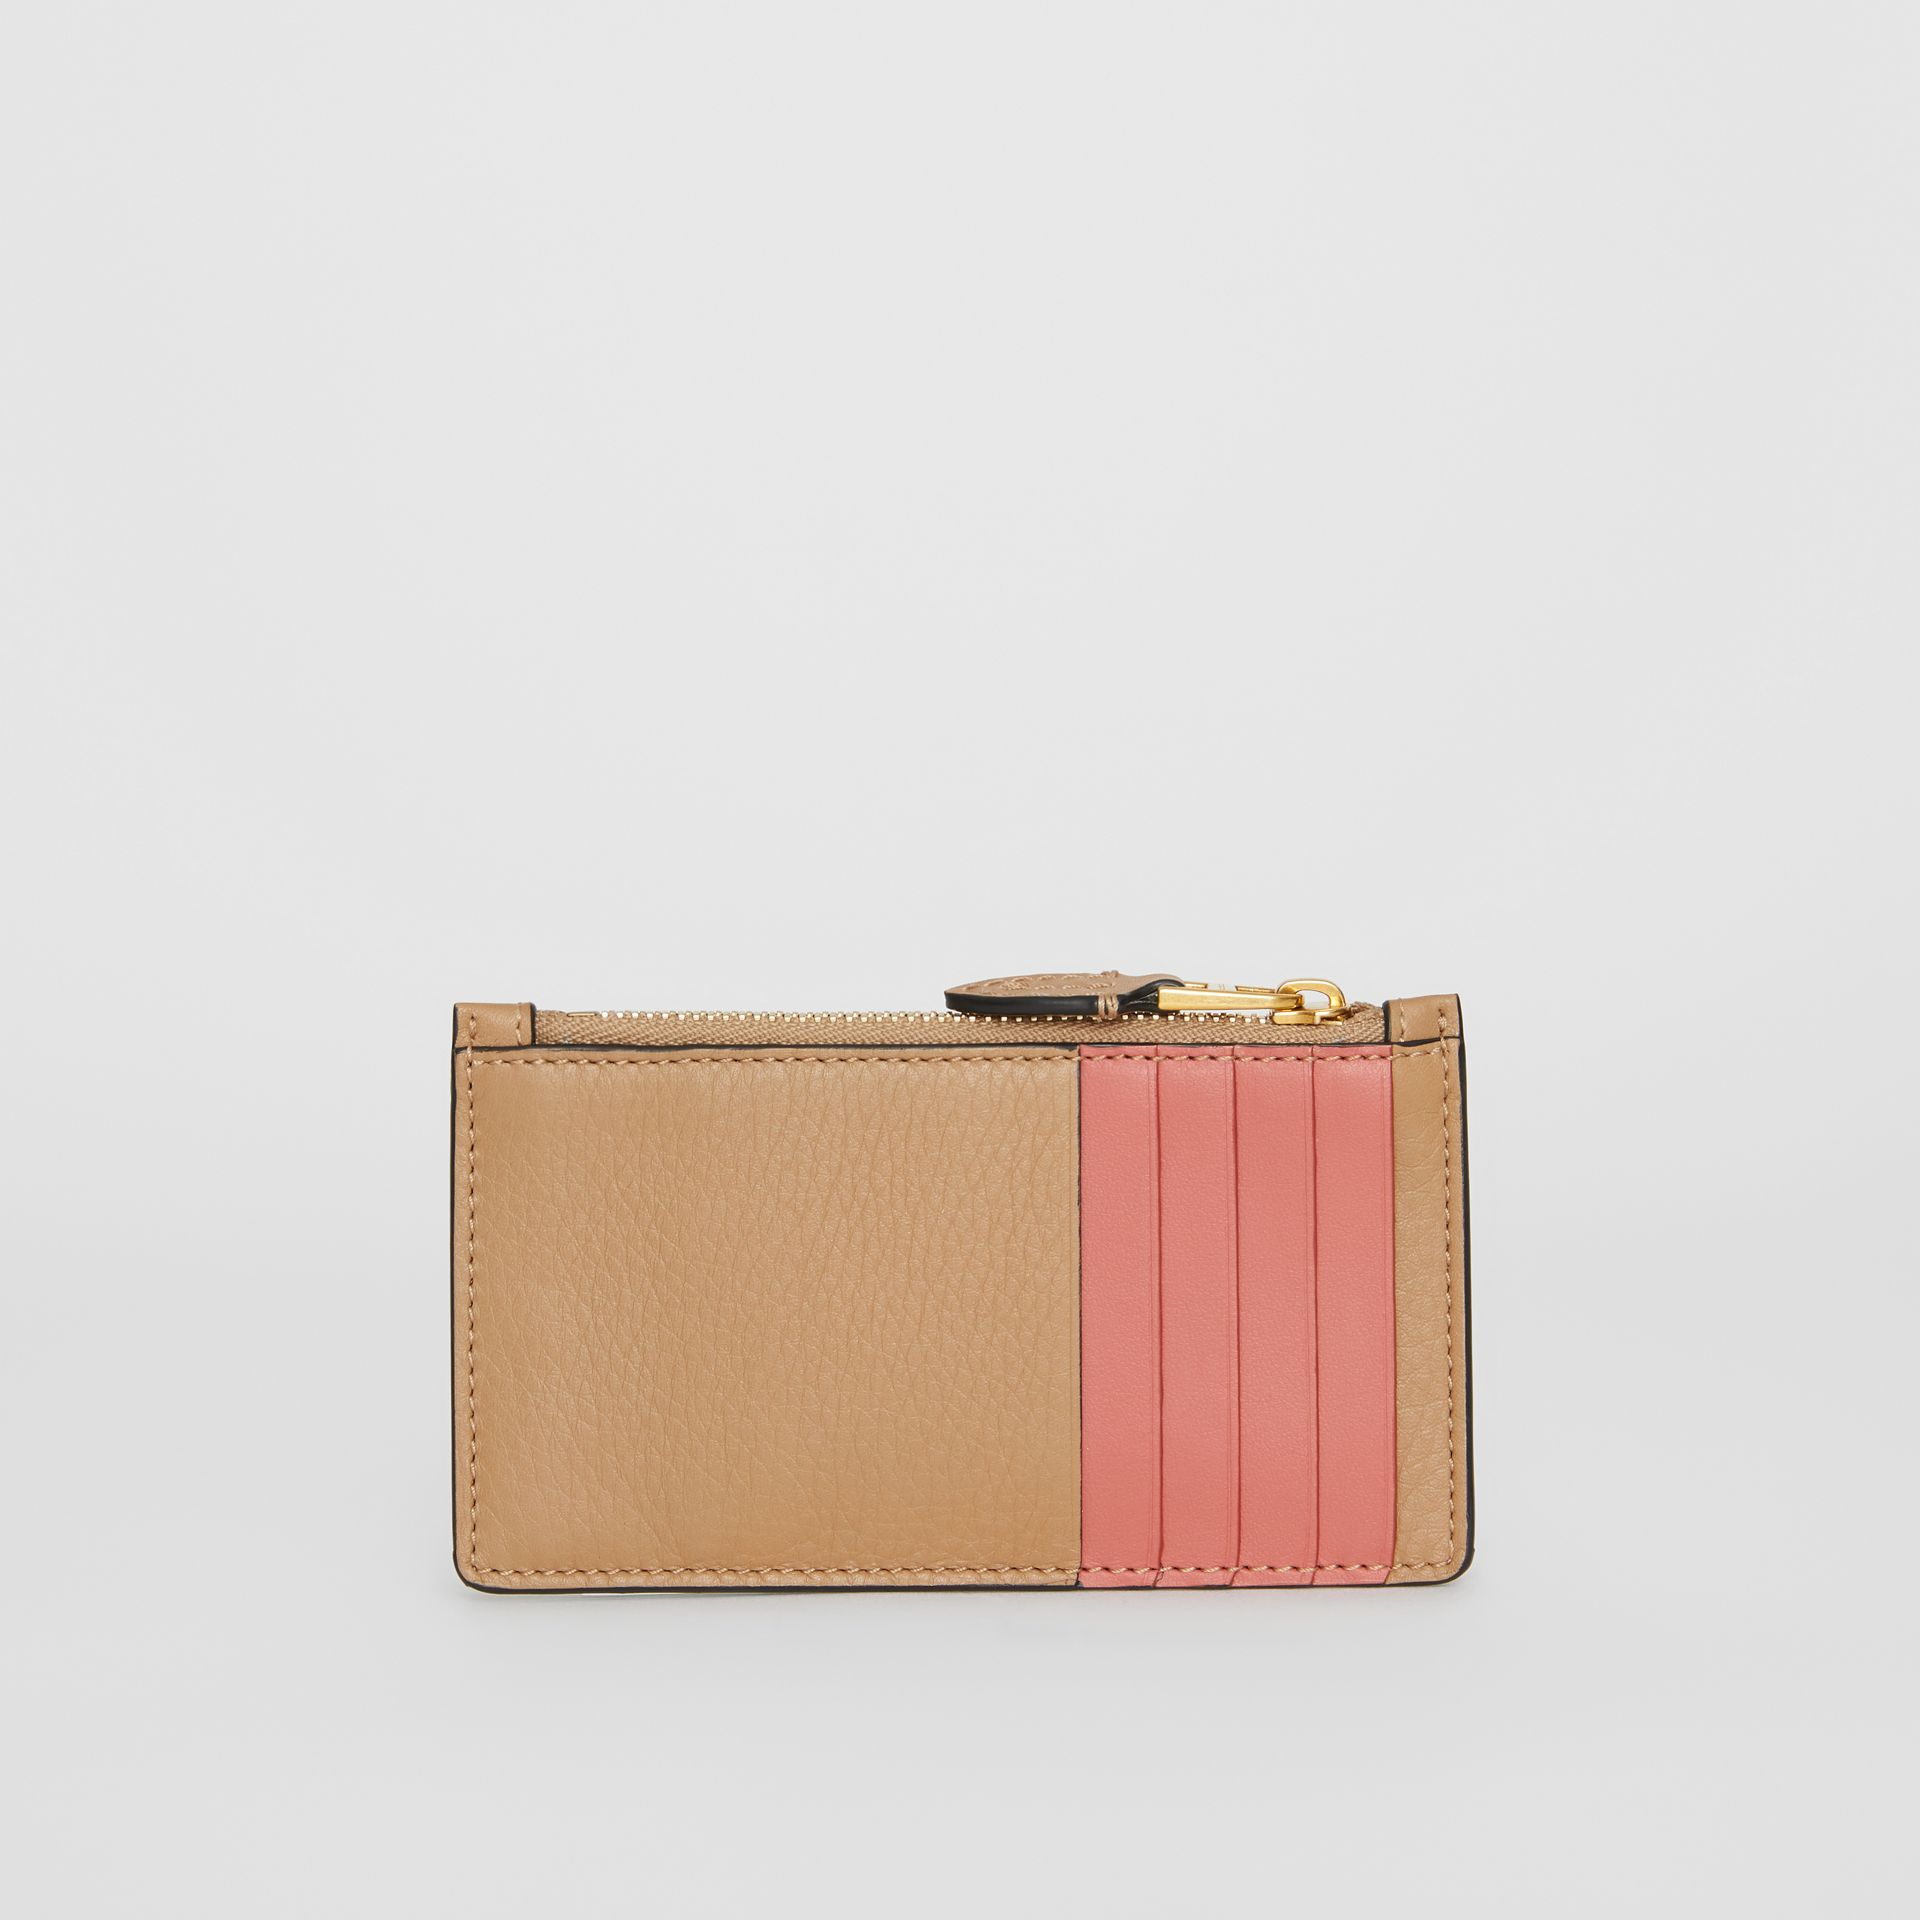 Two-tone Leather Card Case in Light Camel - Women | Burberry - gallery image 5